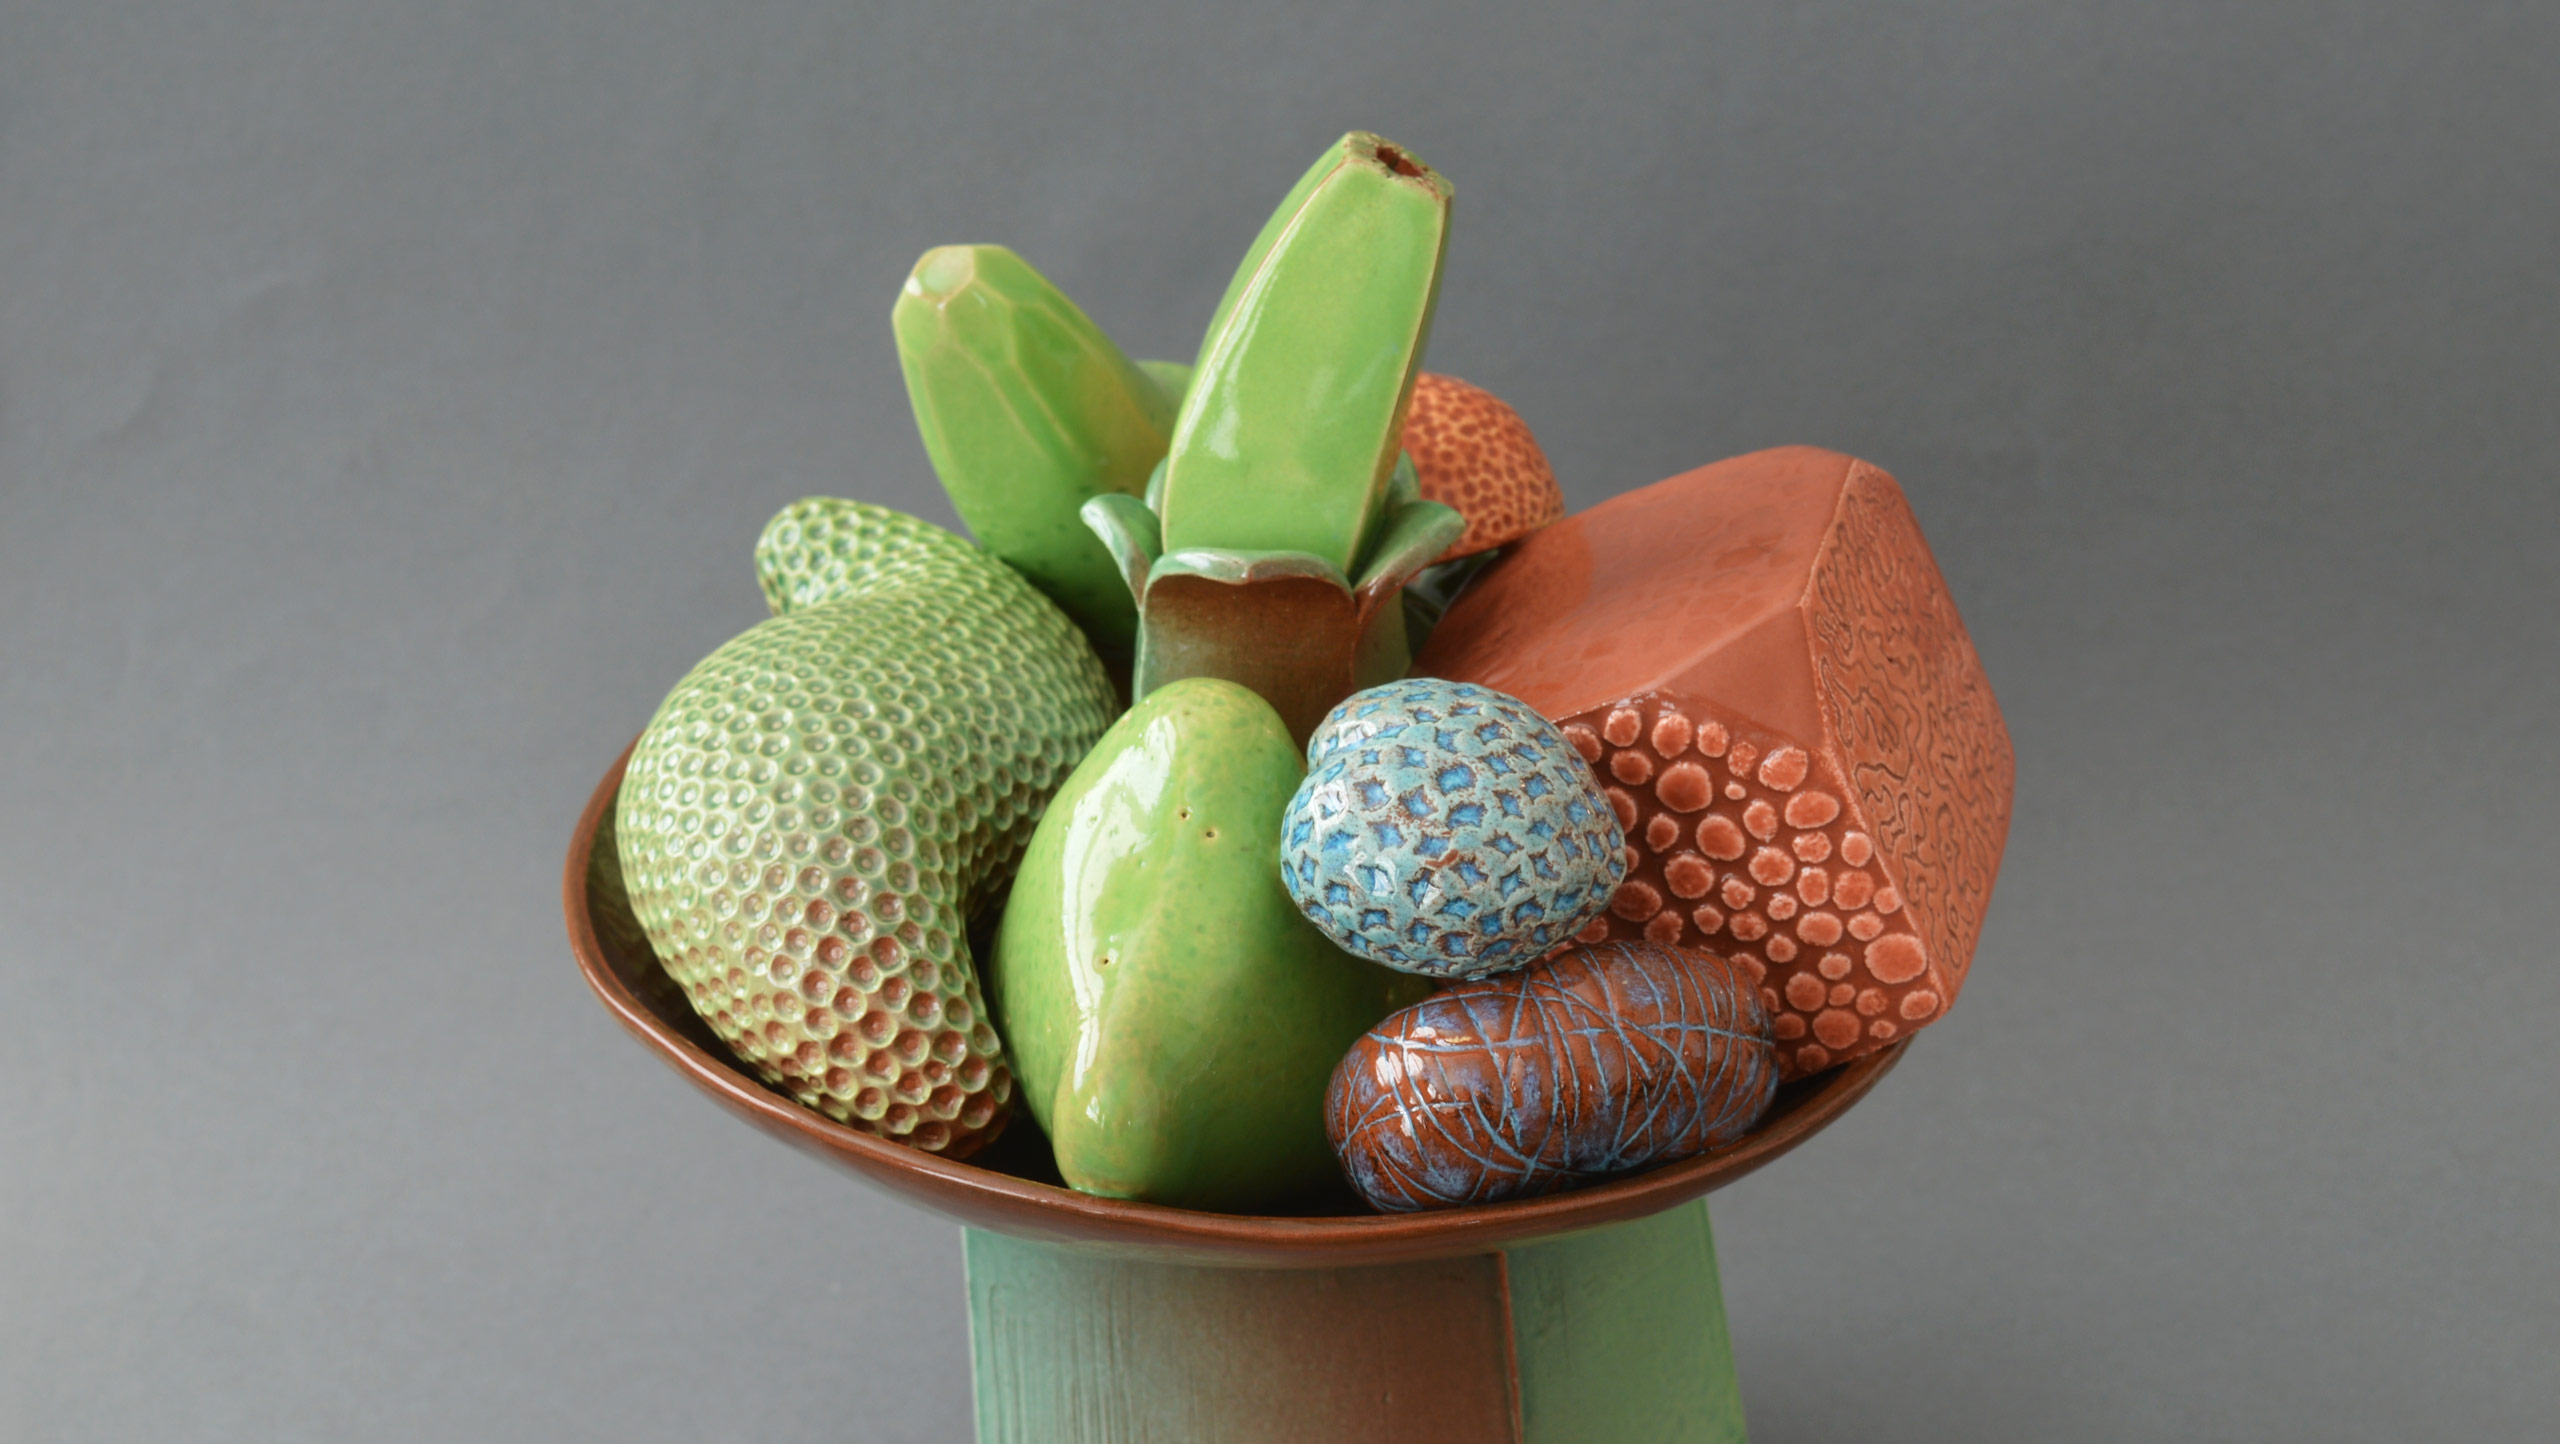 Photograph of 'Abundance' - still life on stand by contemporary ceramic artist Simon Fell